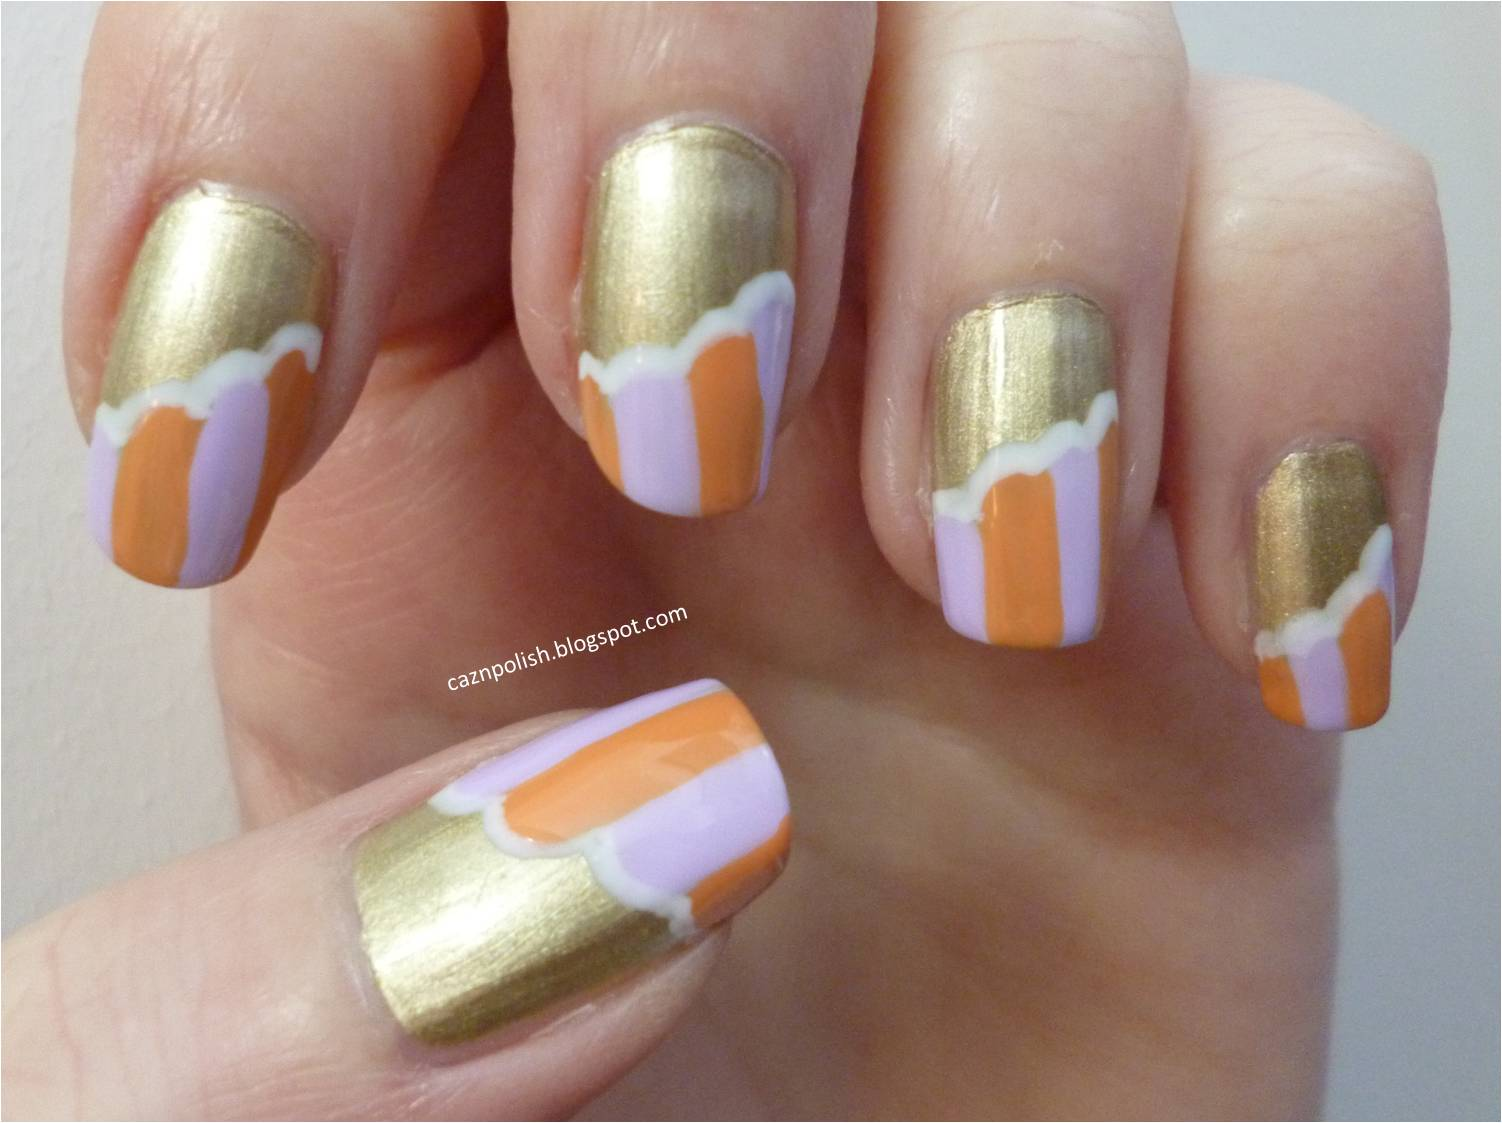 caz 'n' polish | Unwrapped Pastel Stripe Nails